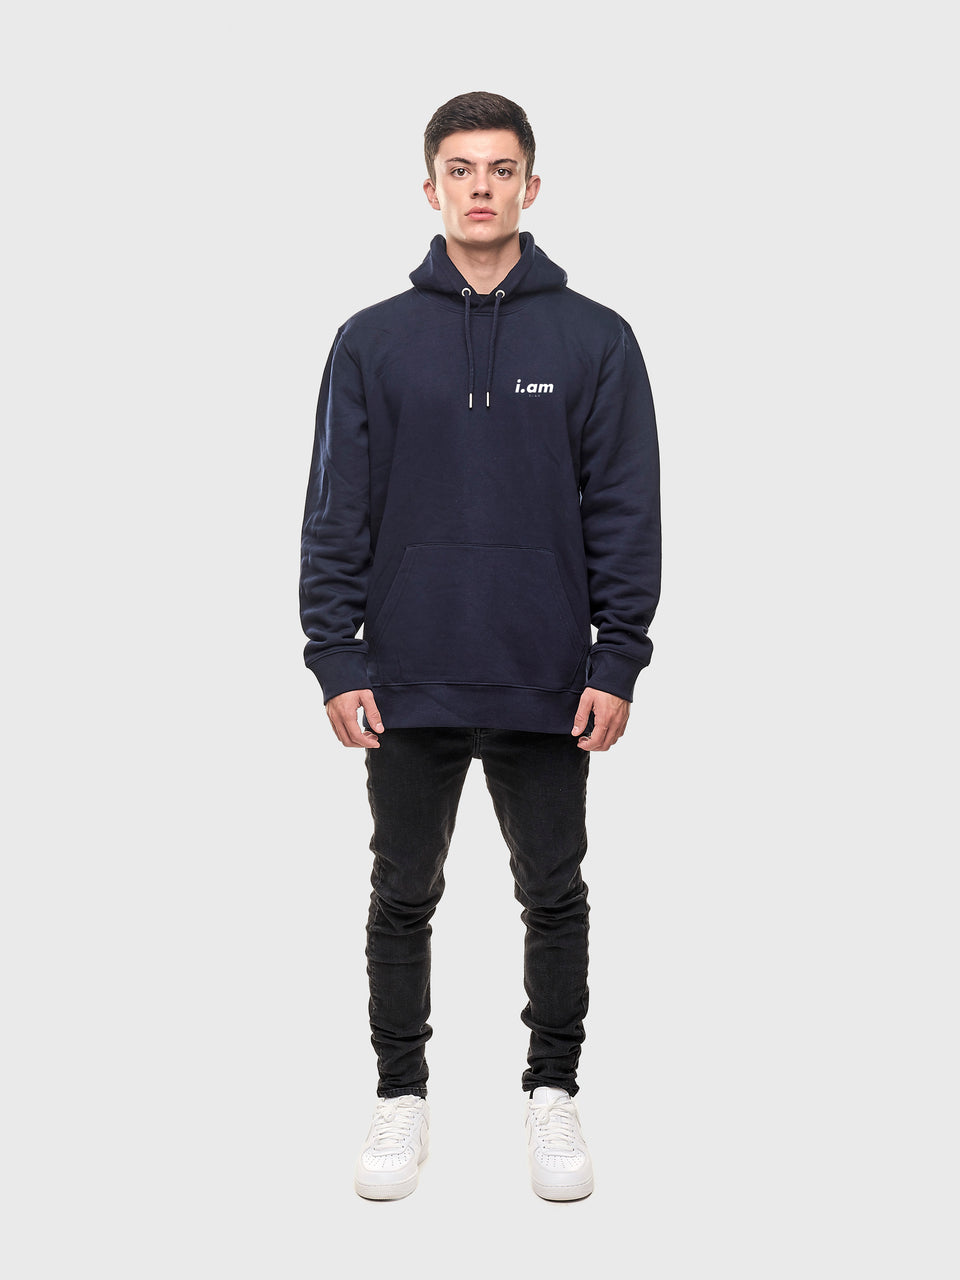 I am who I am - Navy - Unisex pull over hoodie